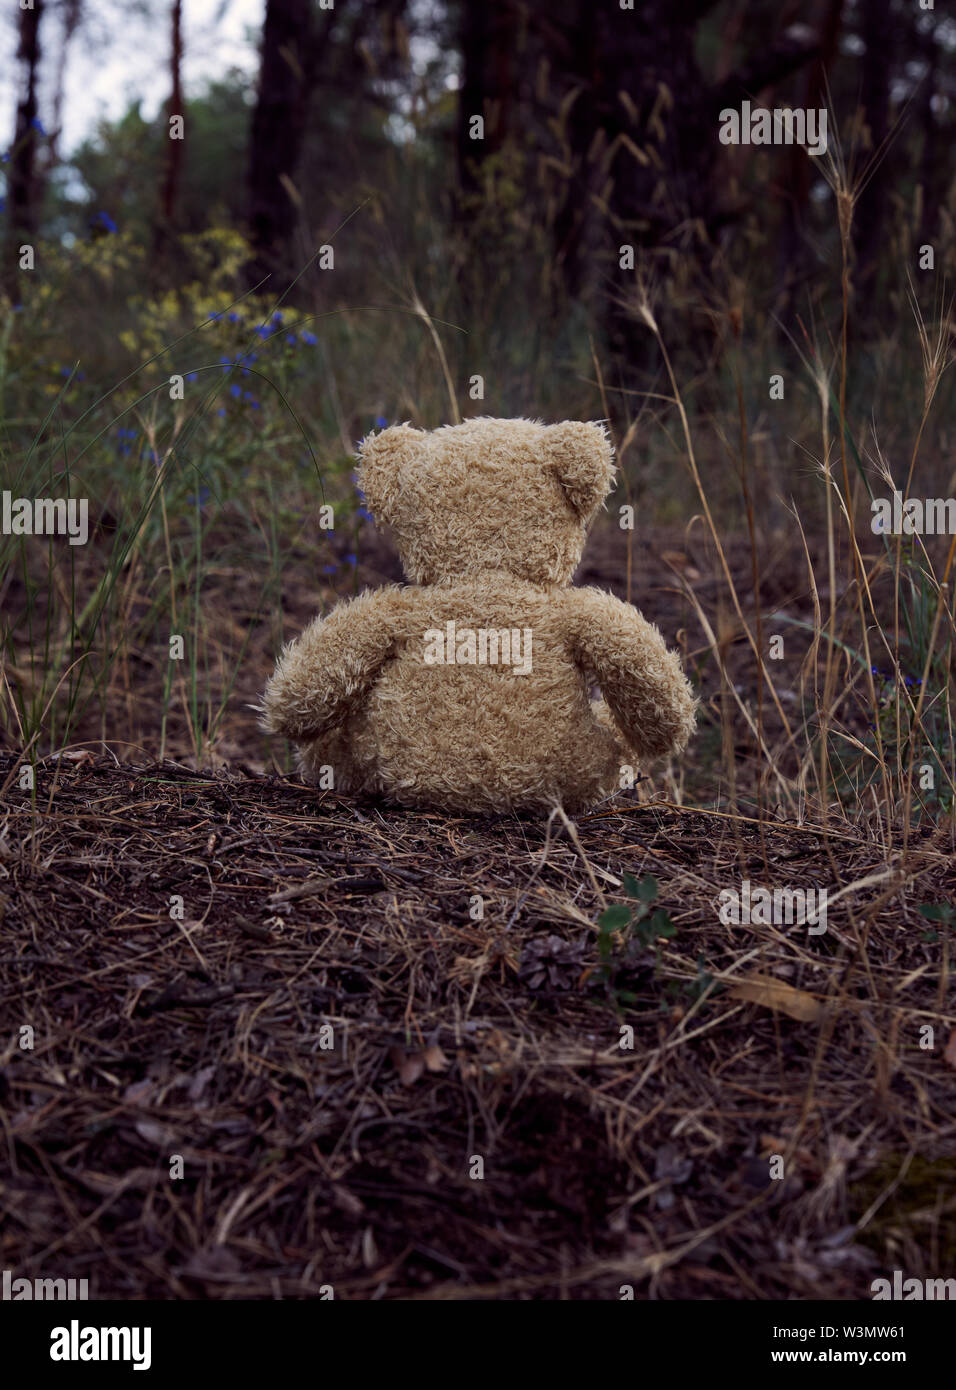 brown teddy bear sits back in the middle of a sandy road in the forest,  concept of loneliness and forgetting - Stock Image